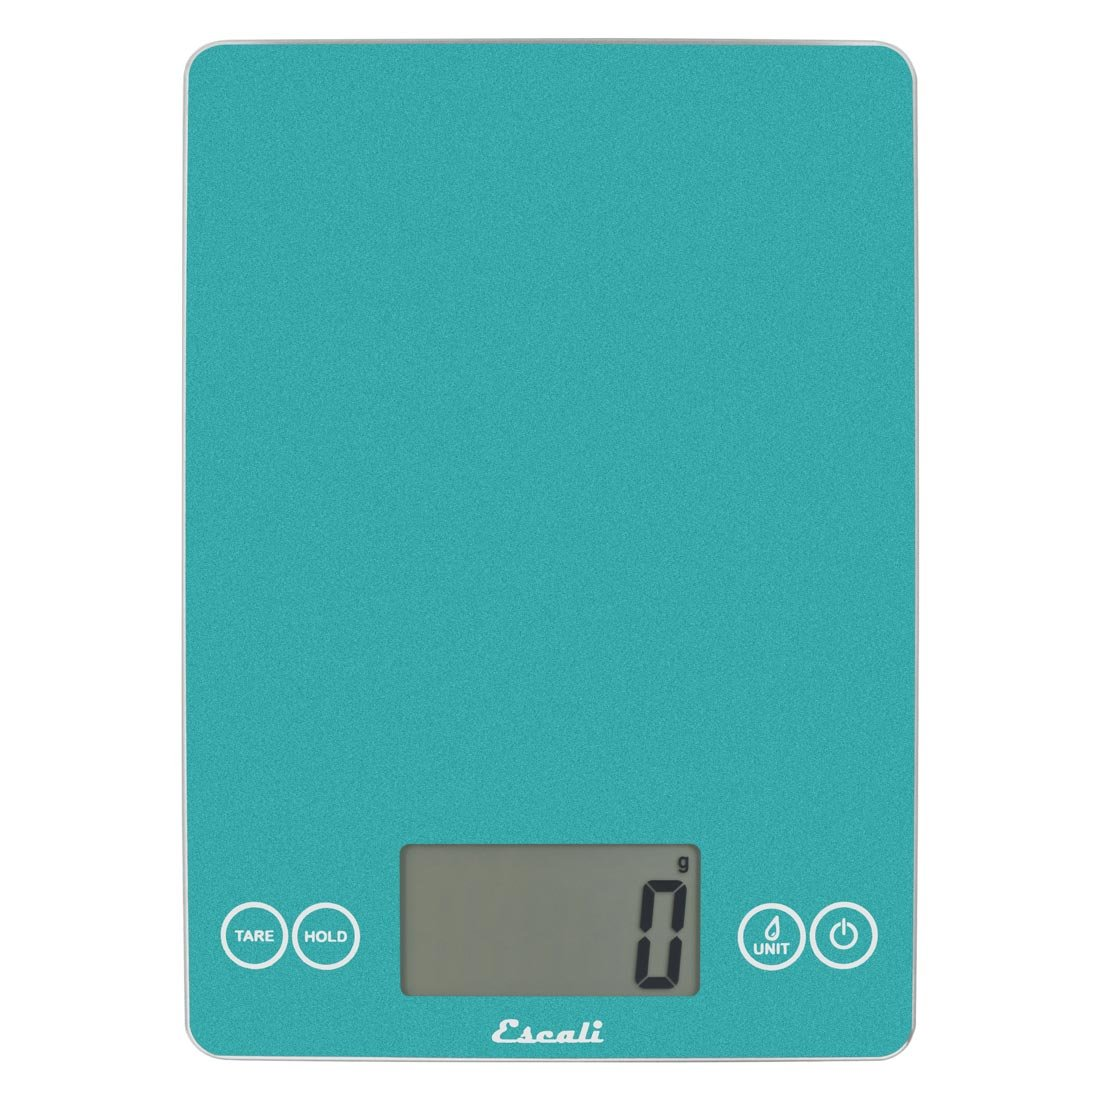 "Escali Arti 157SB Precision Glass Surface Kitchen,Herb, Nutrition, Calorie Counting Scale, Digital LCD Display, 15lb Capacity, Sky Blue, 9"" x 6.5"" x 0.75"""